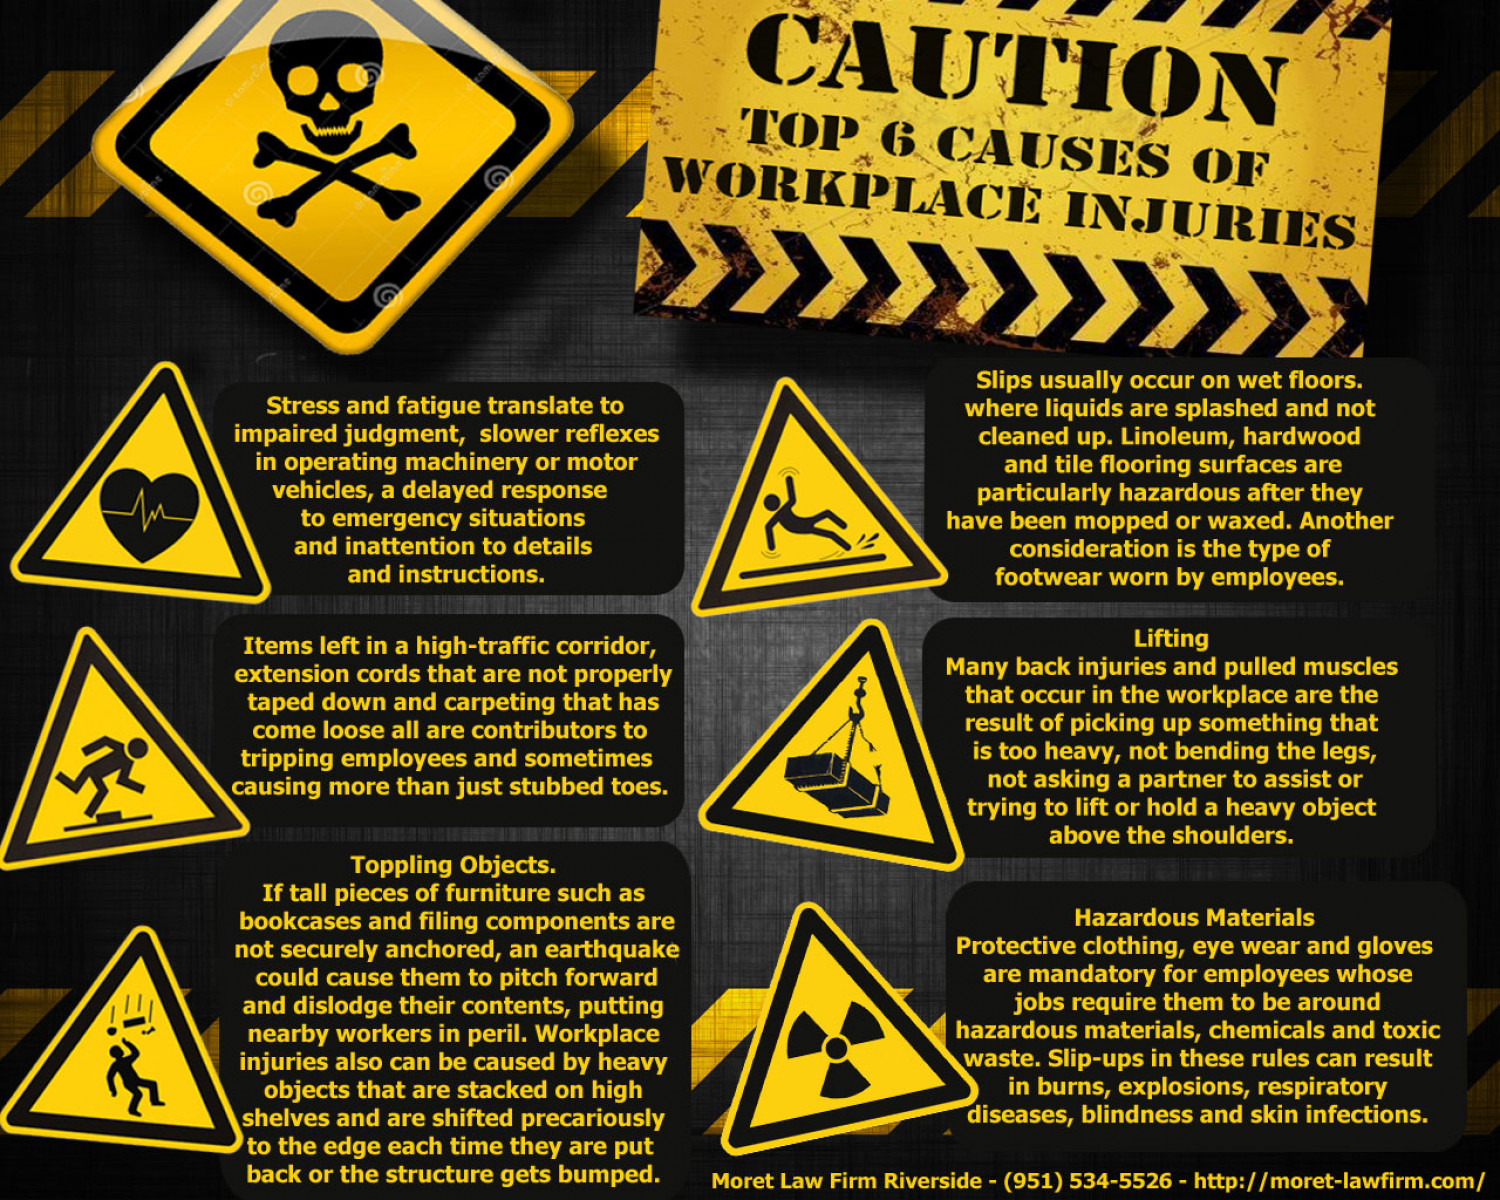 Top 6 Causes Of Workplace Injuries Infographic